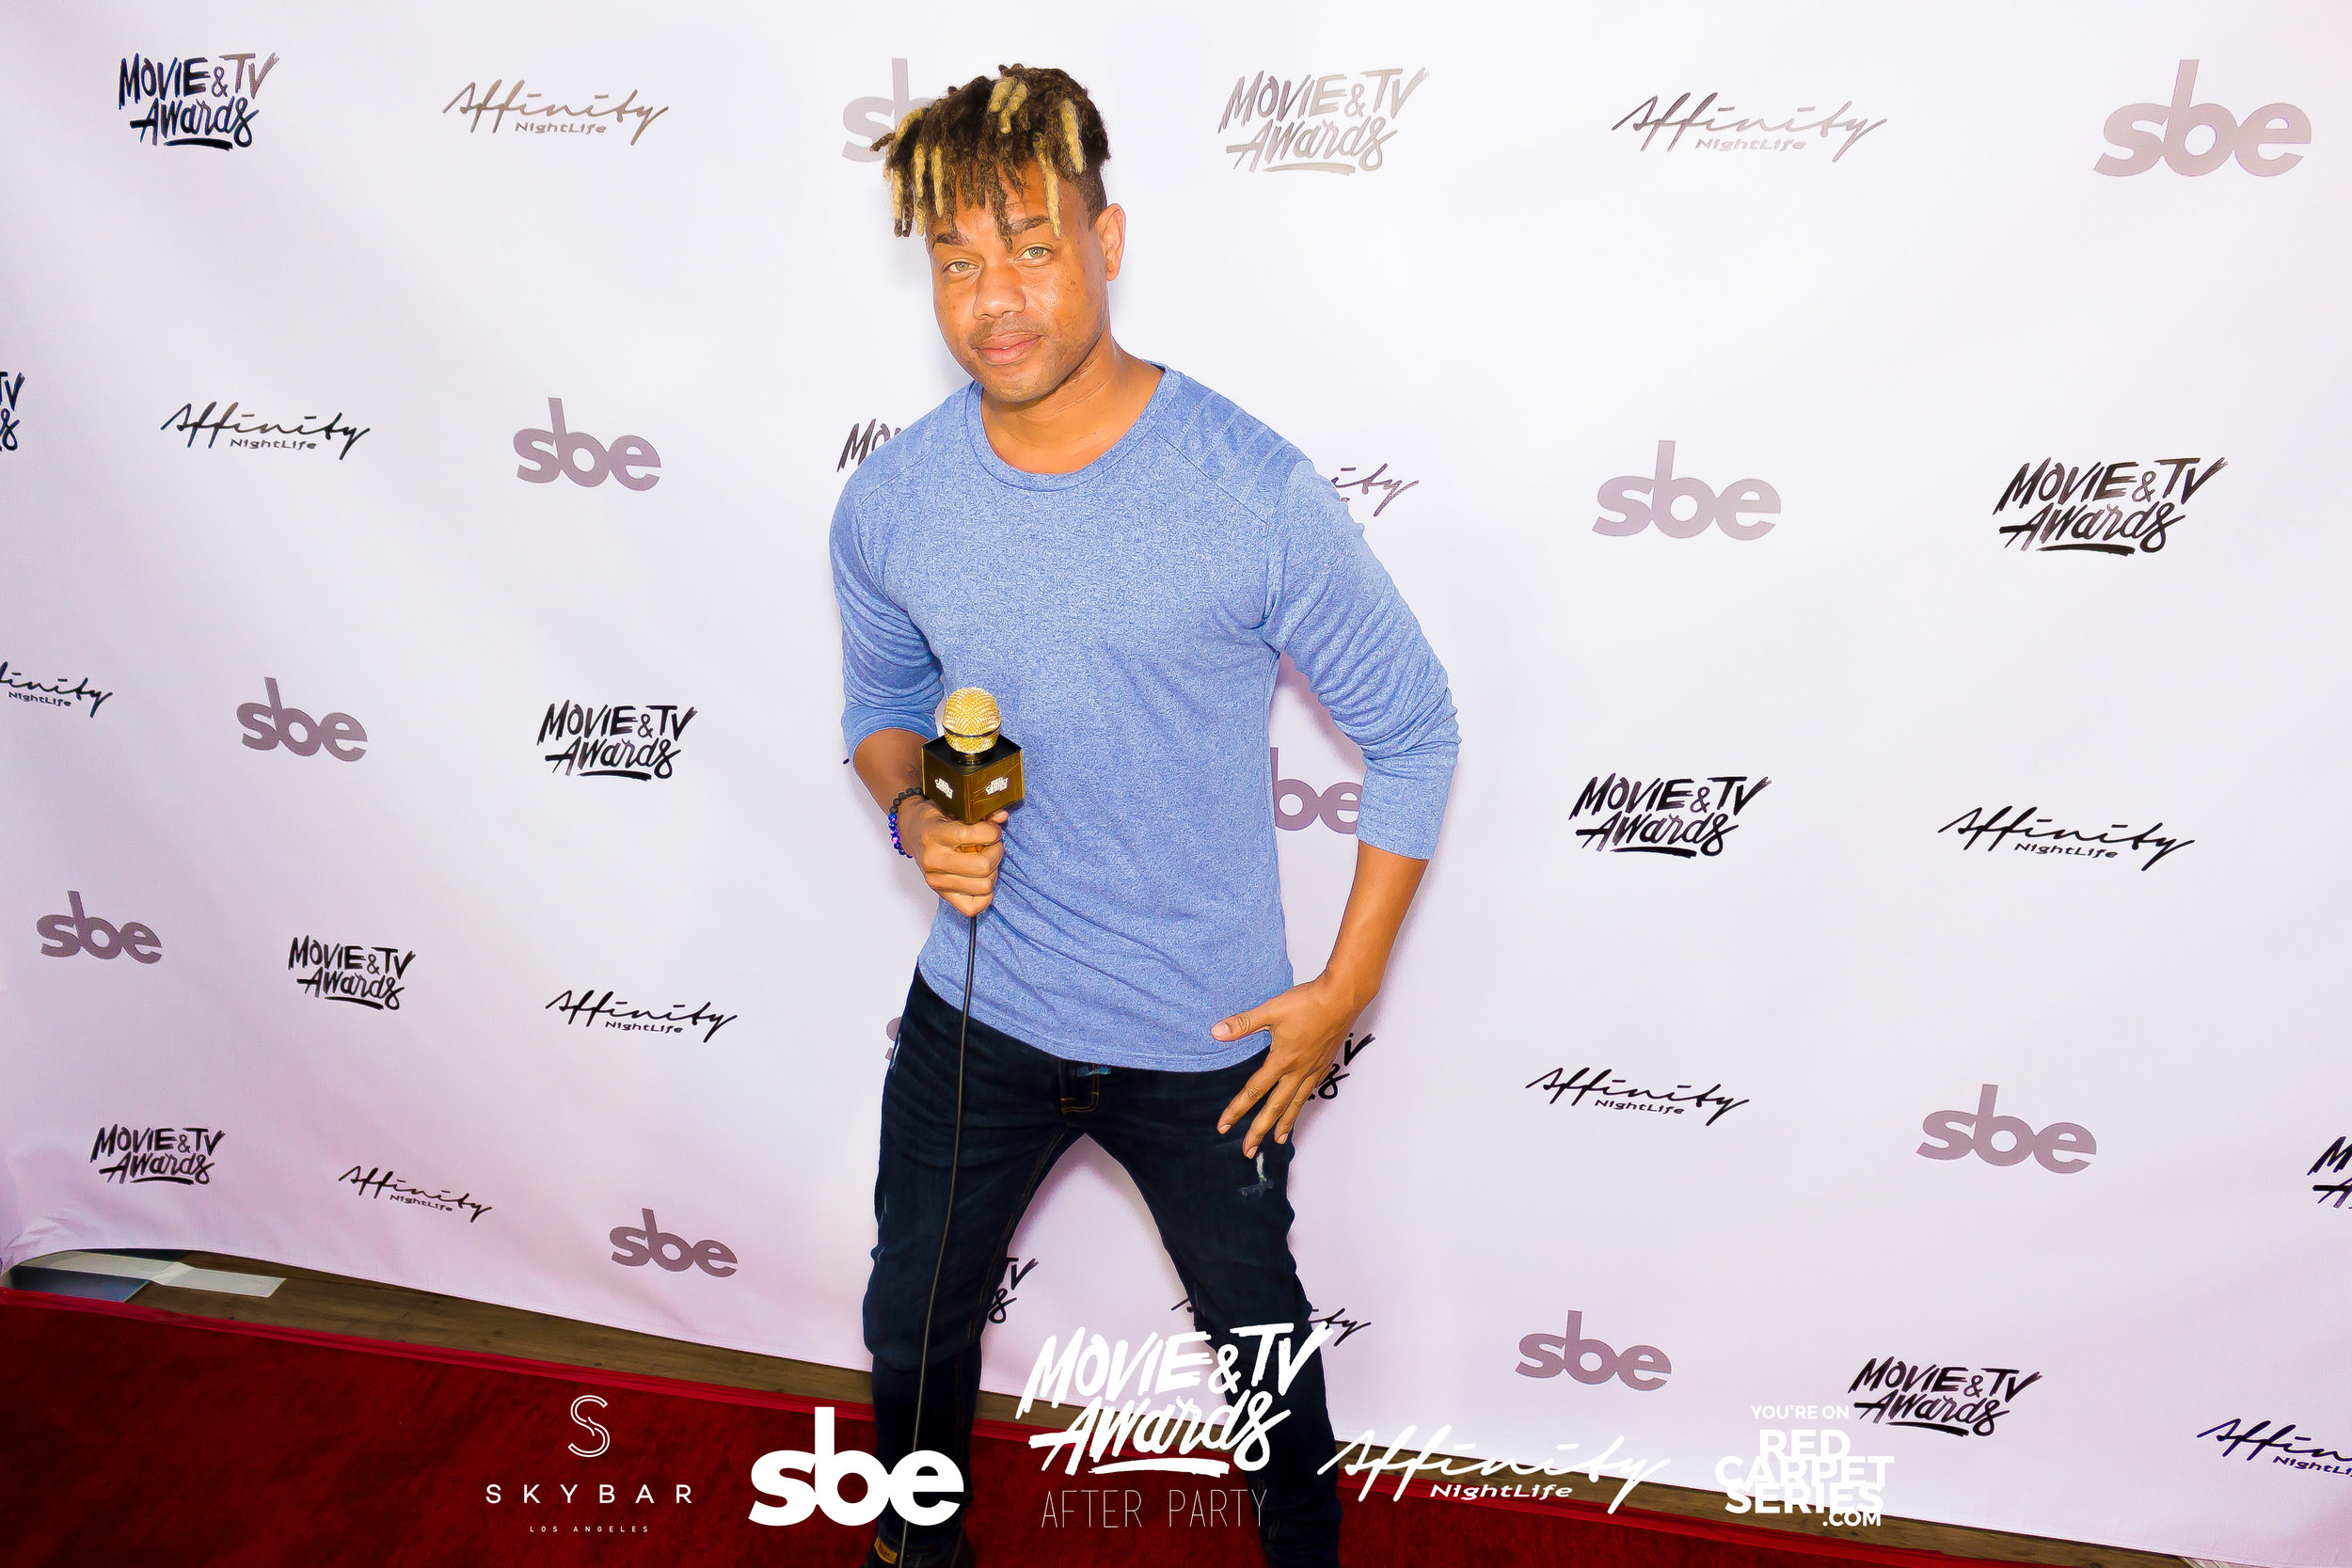 Affinity Nightlife MTV Movie & TV Awards After Party - Skybar at Mondrian - 06-15-19 - Vol. 1_7.jpg